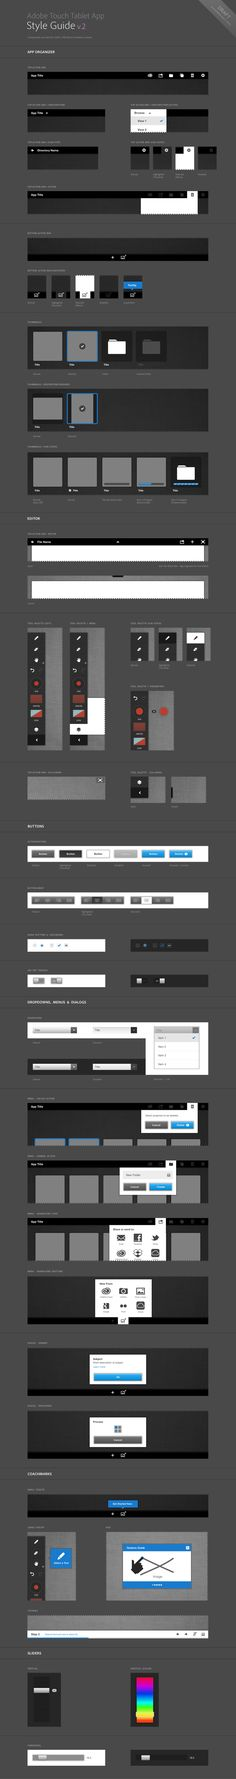 """Adobe Touch Tablet Style Guide *** """"Component sheet exploring v2 of Adobe's Touch Tablet UI language"""" by Gabriel Campbell, via Behance *** #gui #adobe #tablet"""